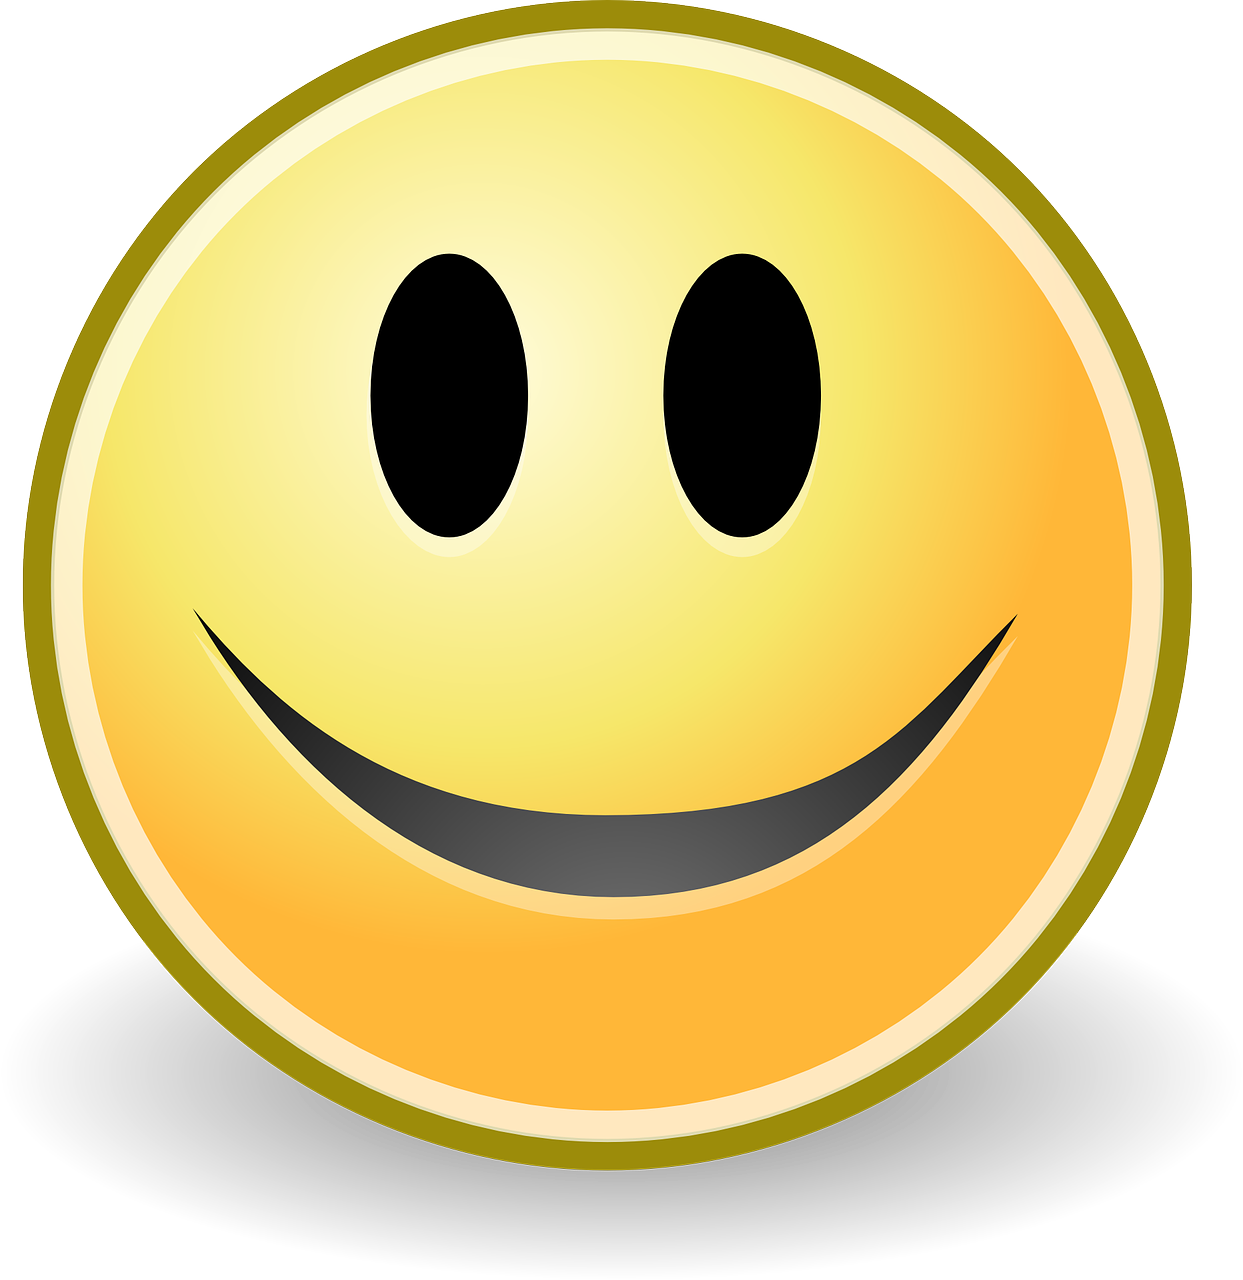 smile-98458_1280.png